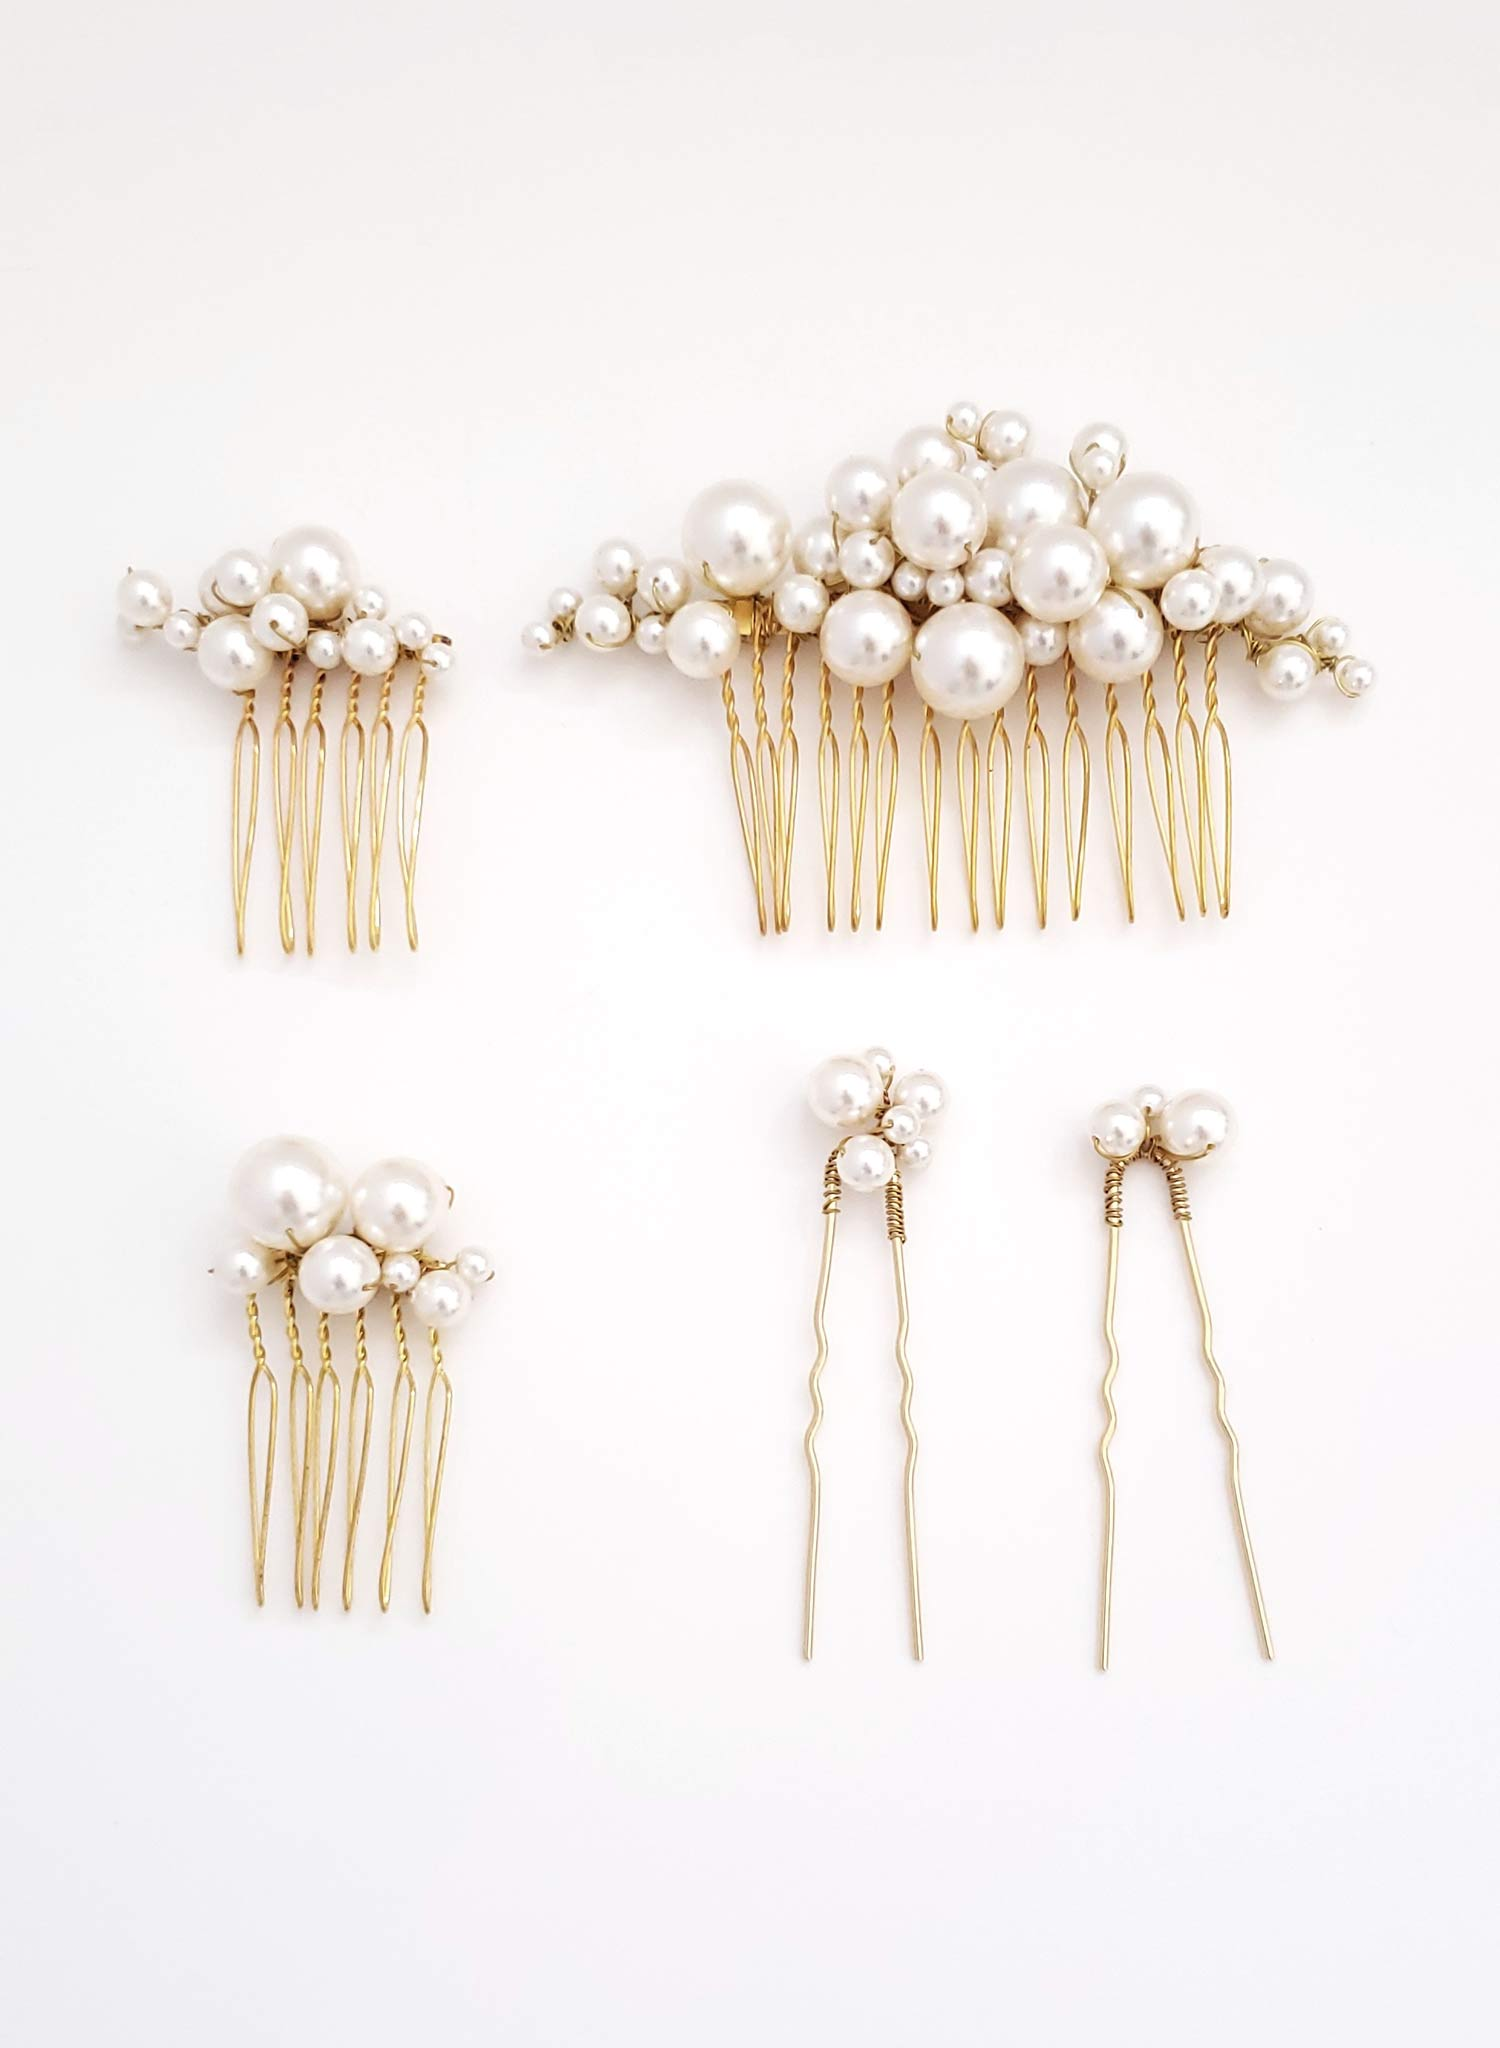 Pearl bubbles hair comb and pin set of 5 - Style #937